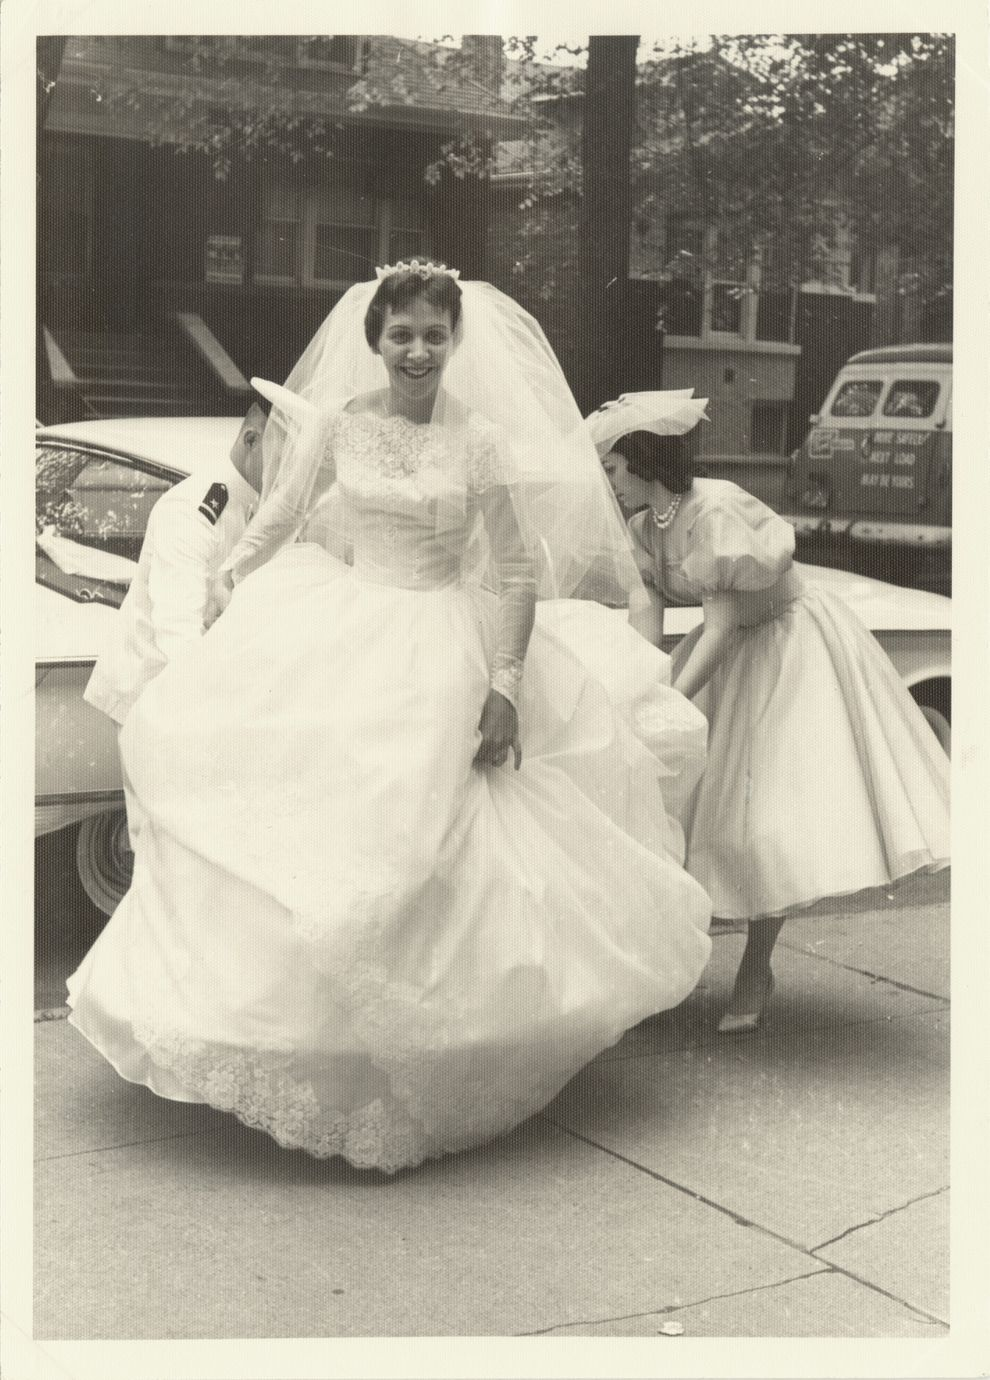 Getting some help with that skirt. | 60 Adorable Real Vintage Wedding Photos From The '60s